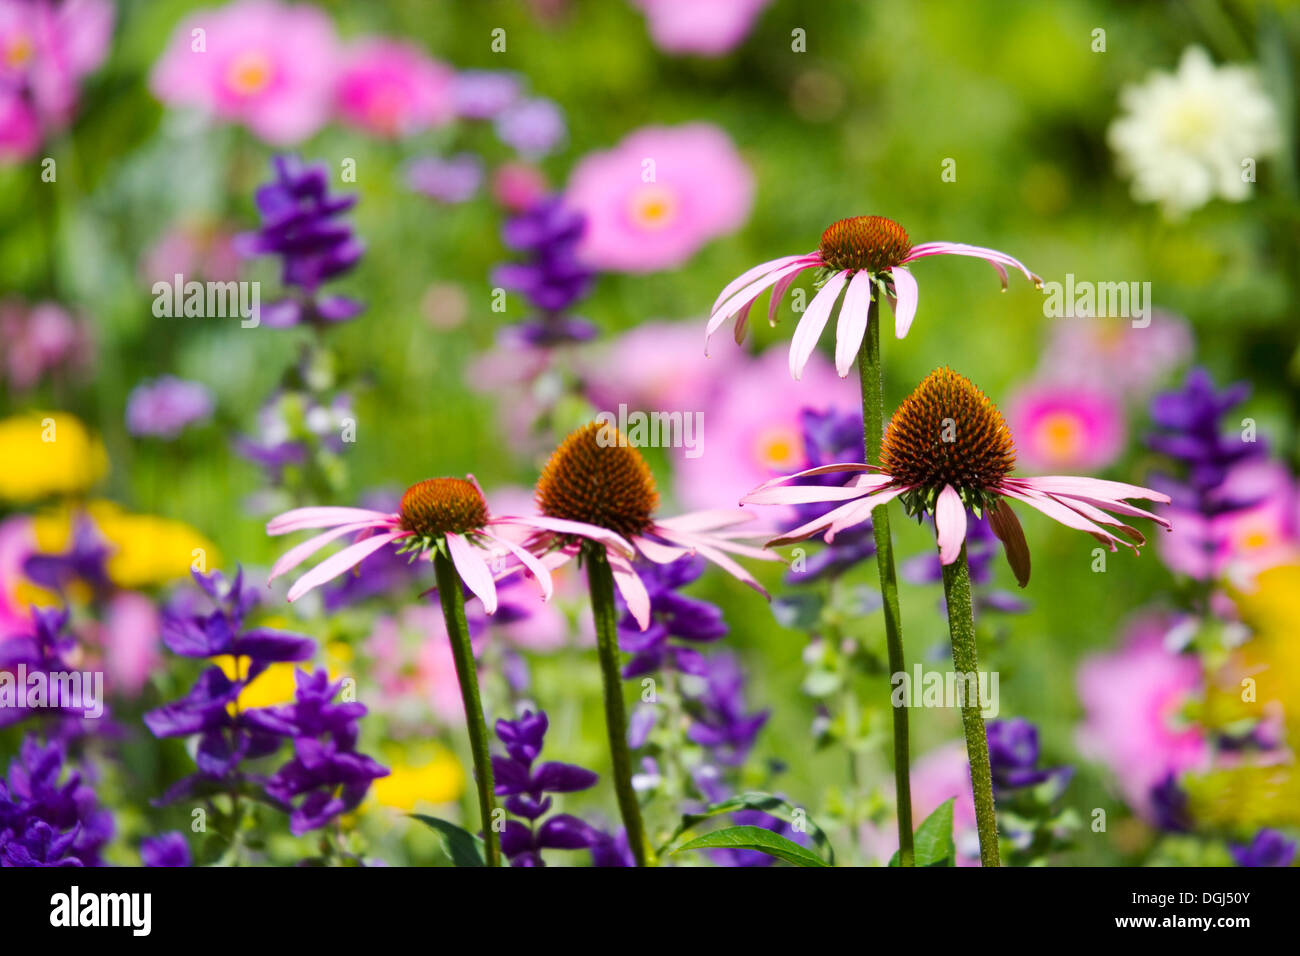 Echinacea or Coneflowers and other herbaceous perennials in the Botanic Garden in Oxford. - Stock Image